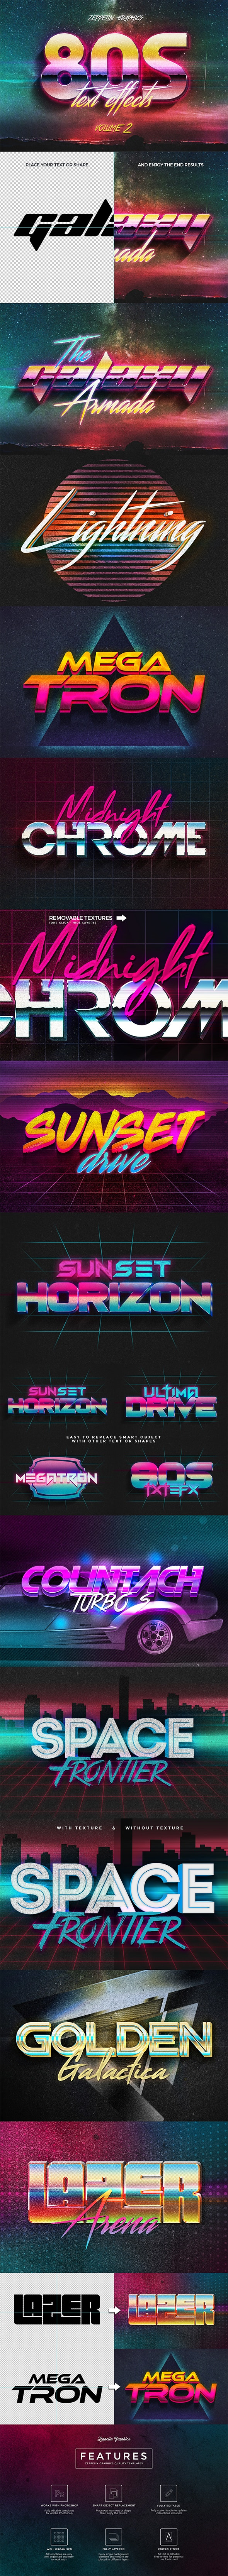 80s Text Effects Vol.2 - Text Effects Actions